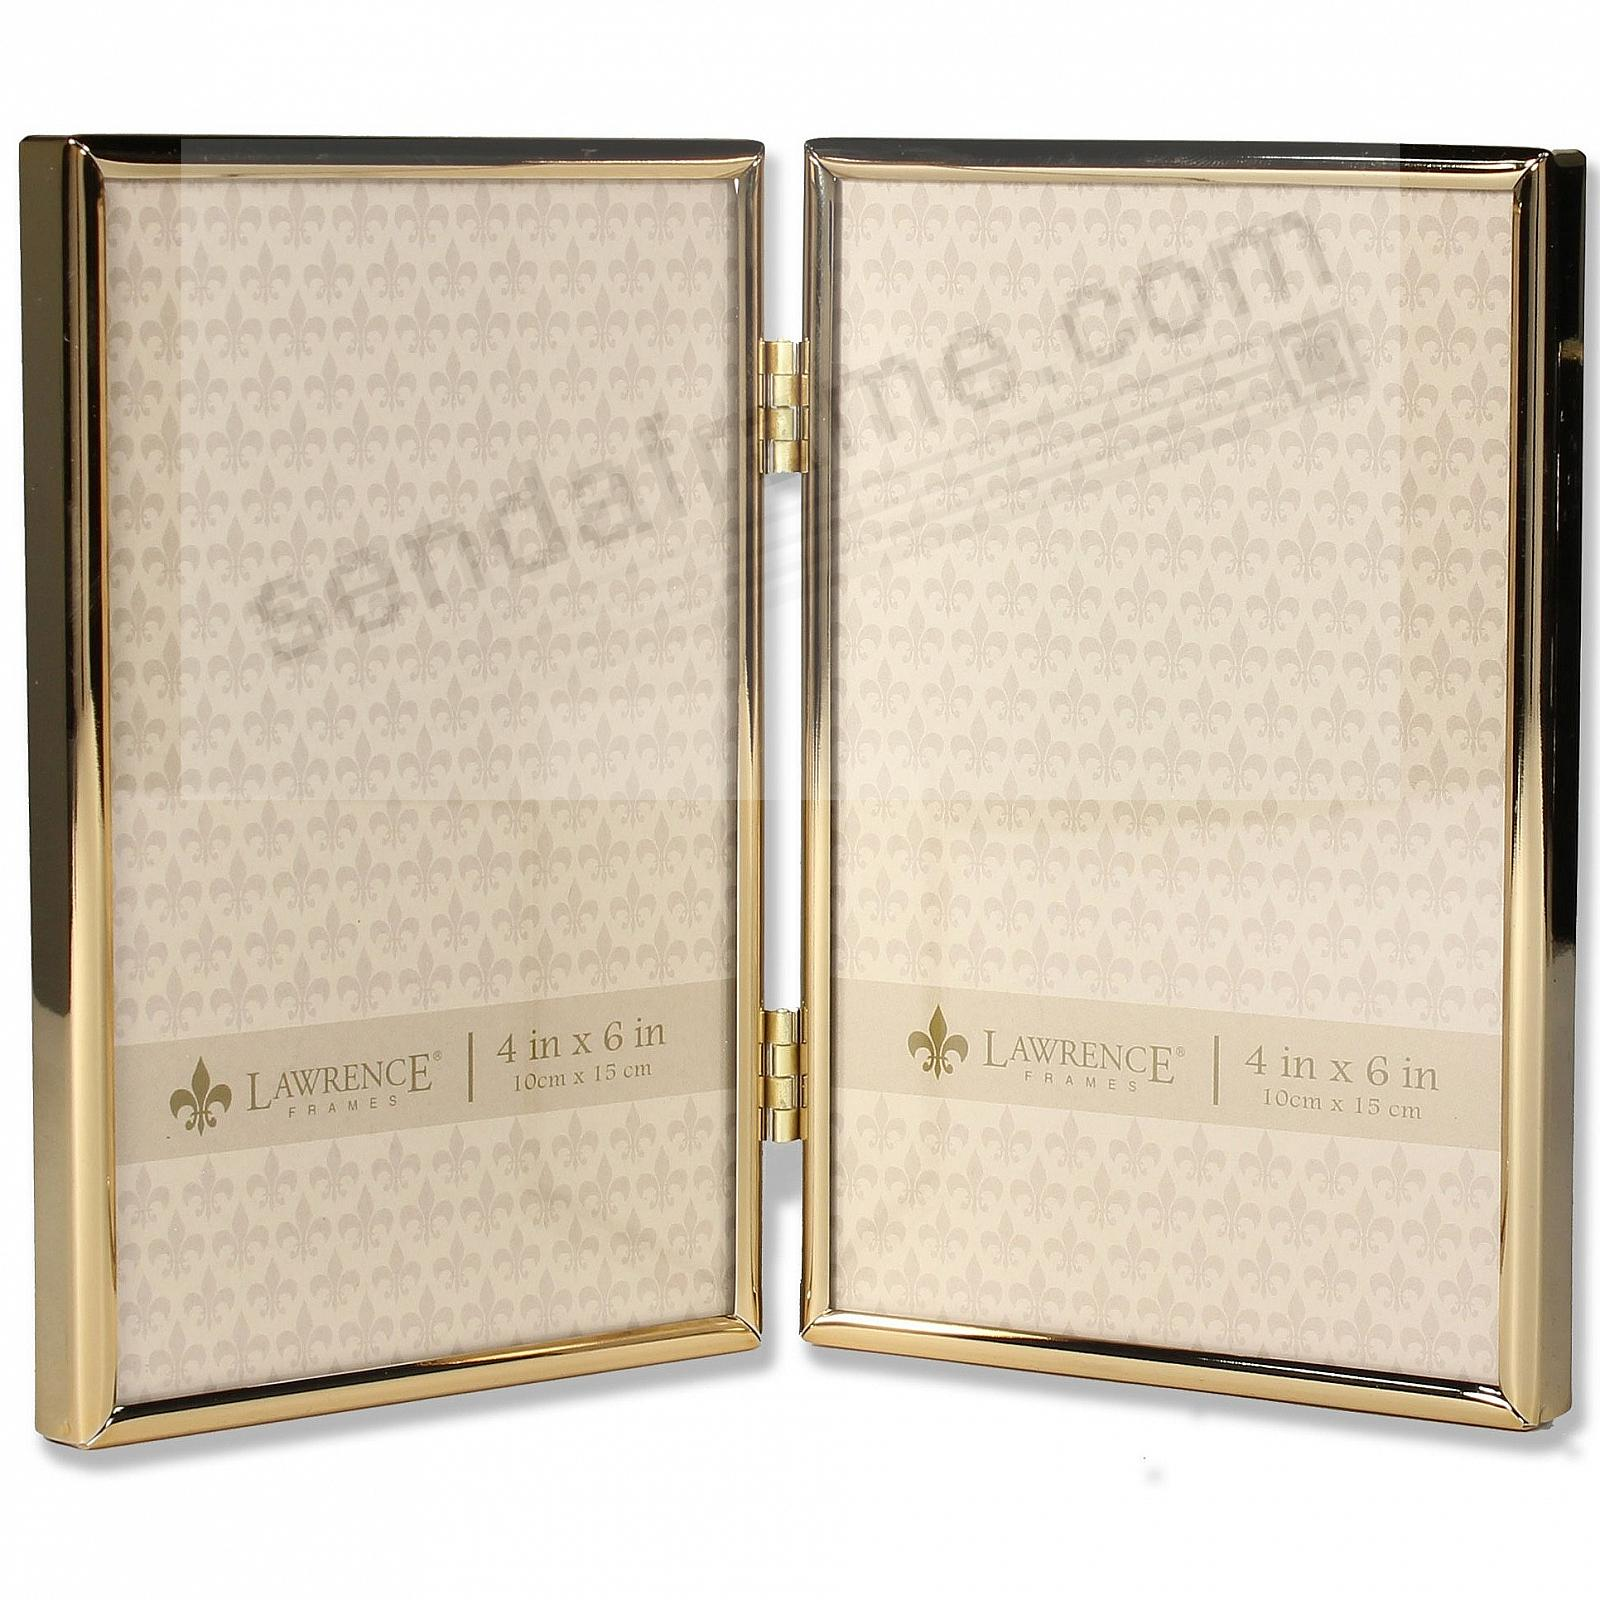 Polished SIMPLY GOLD double hinged 4x6 frame by Lawrence®